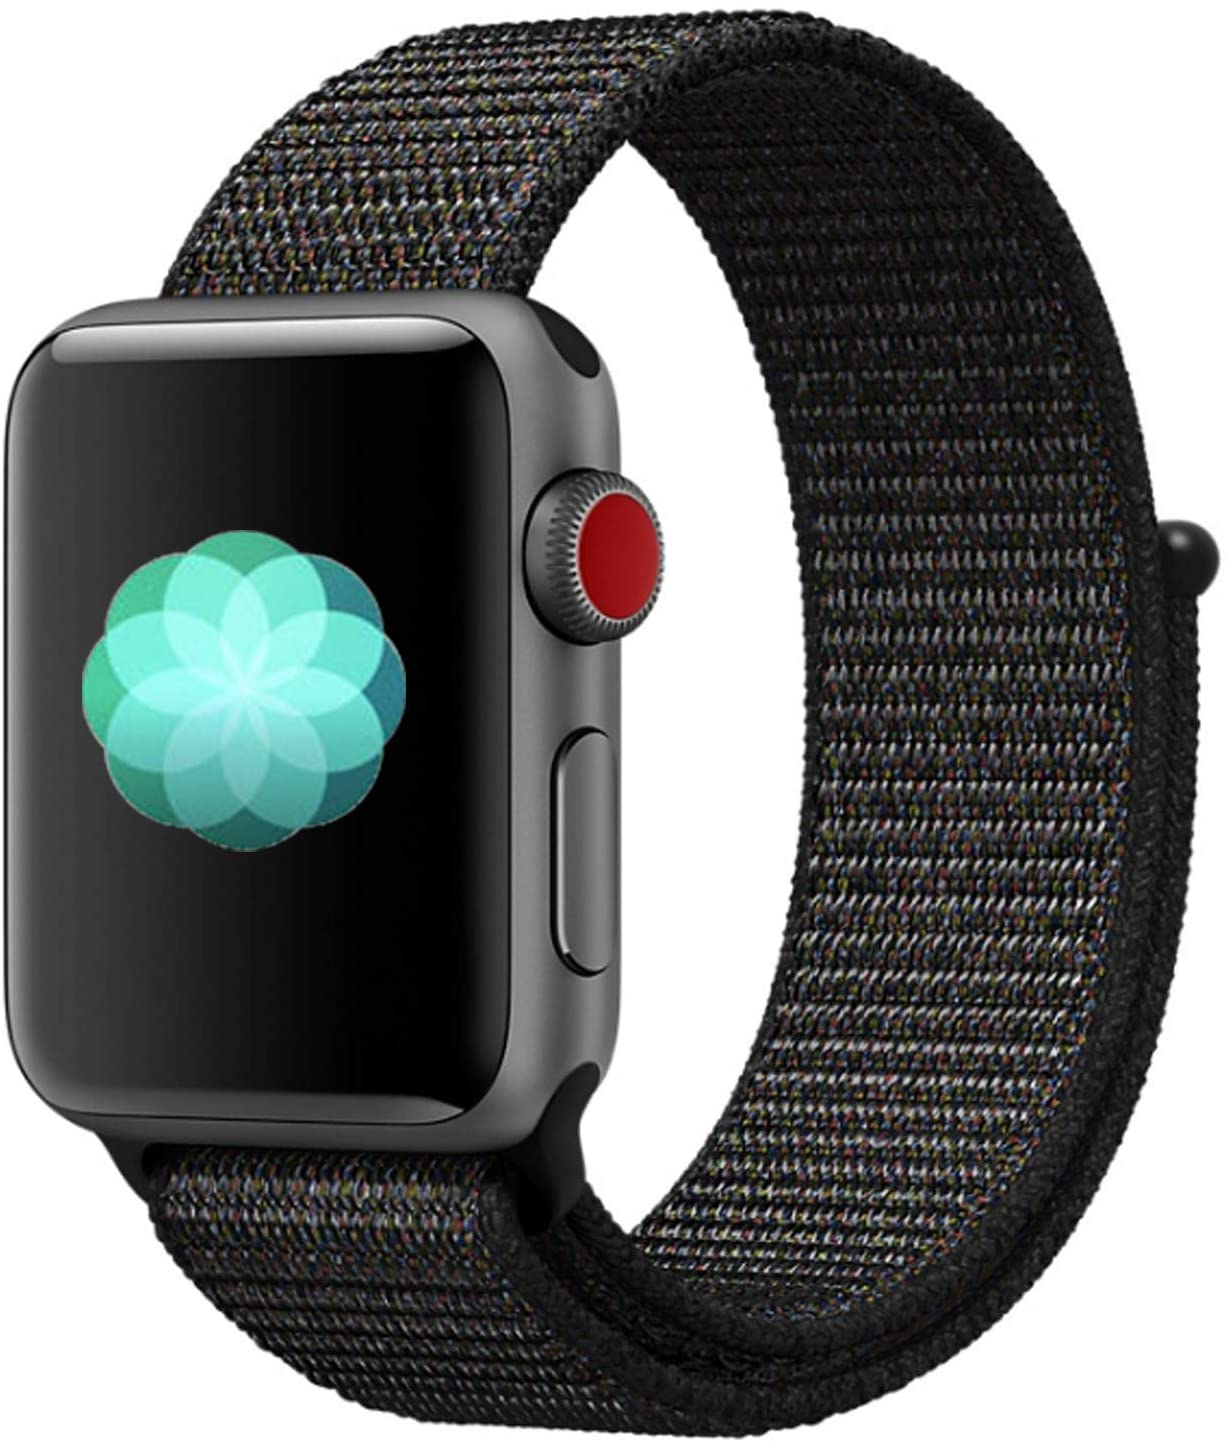 Best selling product on Amazon - Nylon Sport Band for Apple Watch